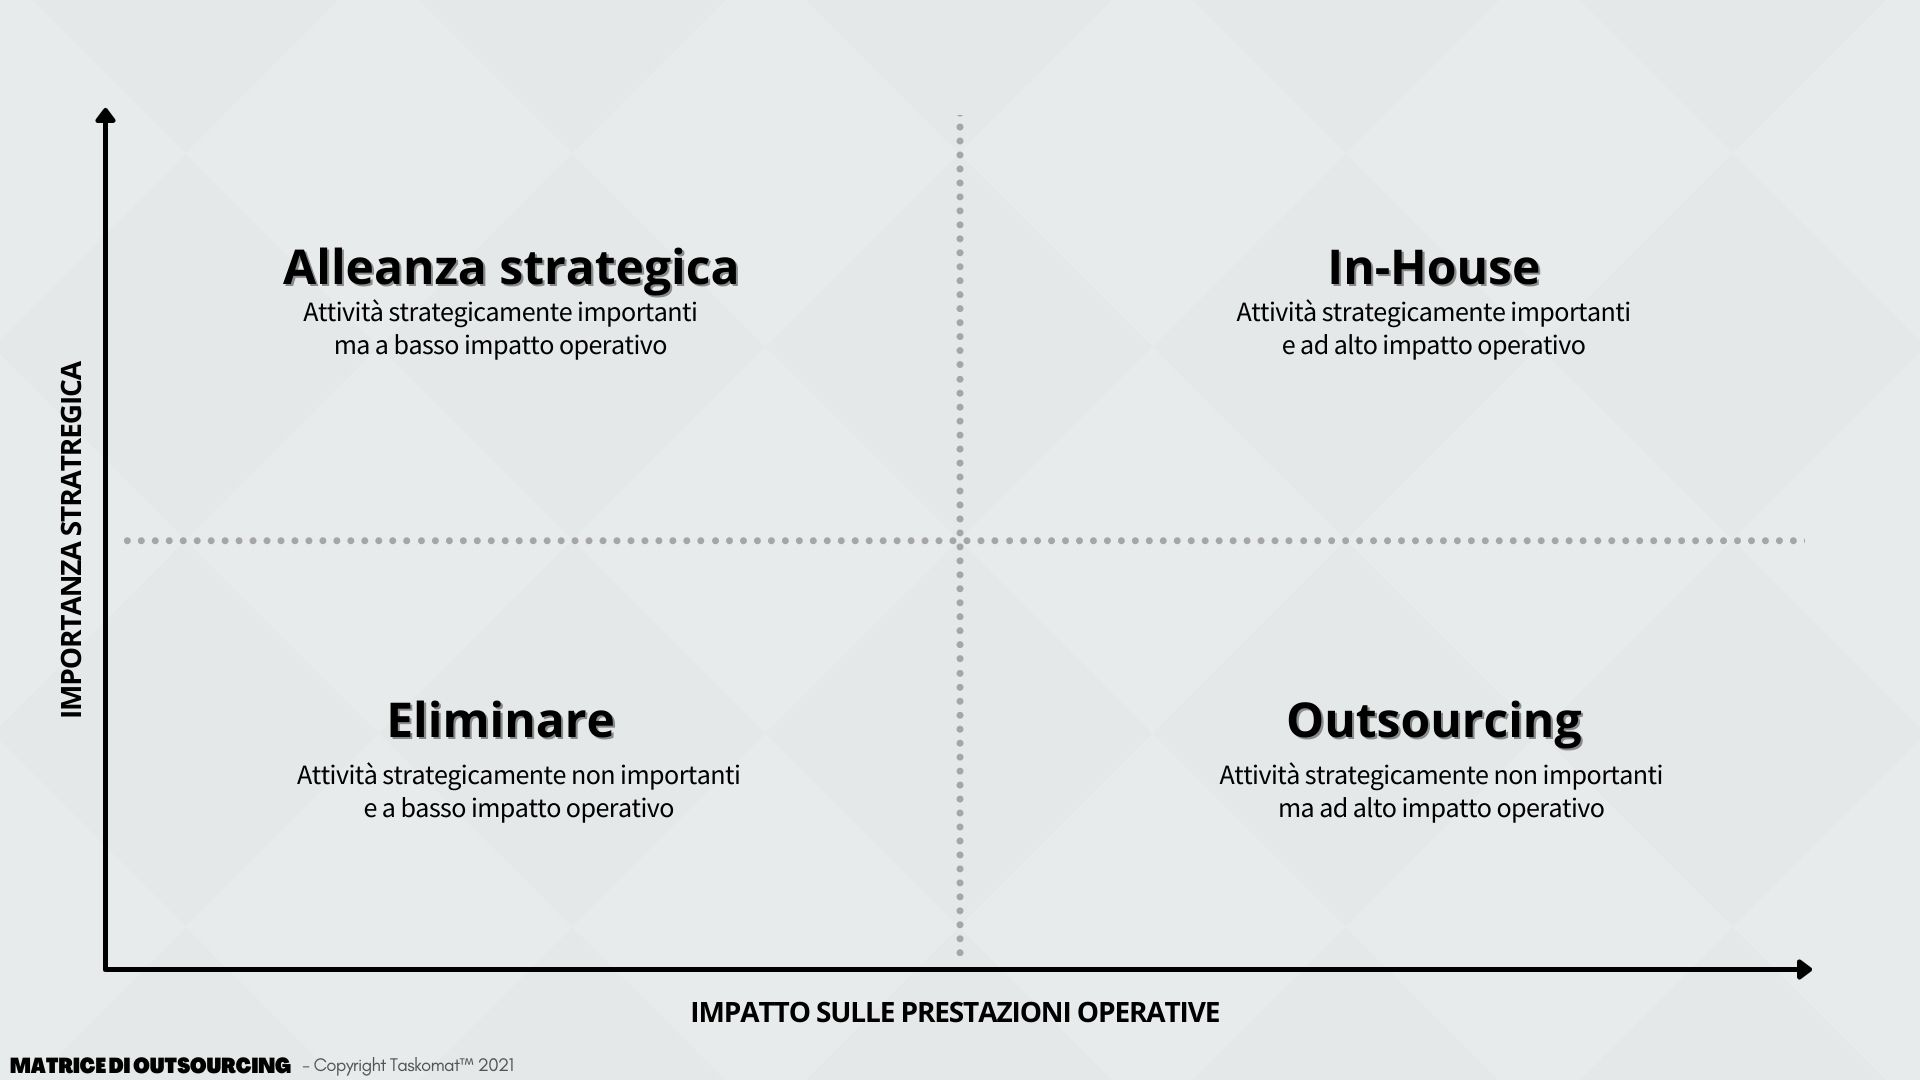 MATRICE DECISIONALE OUTSOURCING